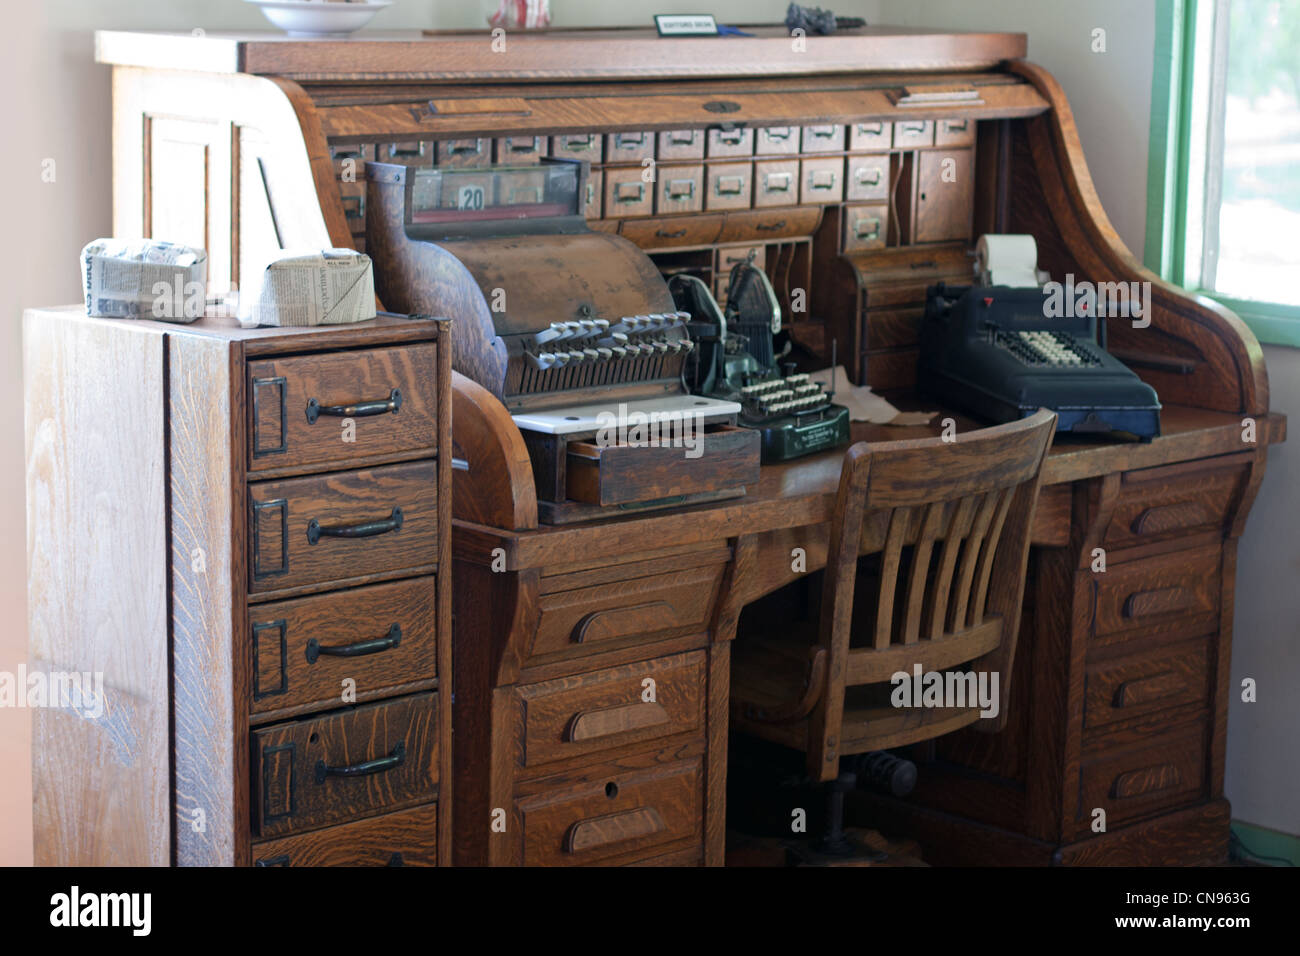 Stock Photo - antique roll top desk with typewriter - Antique Roll Top Desk With Typewriter Stock Photo, Royalty Free